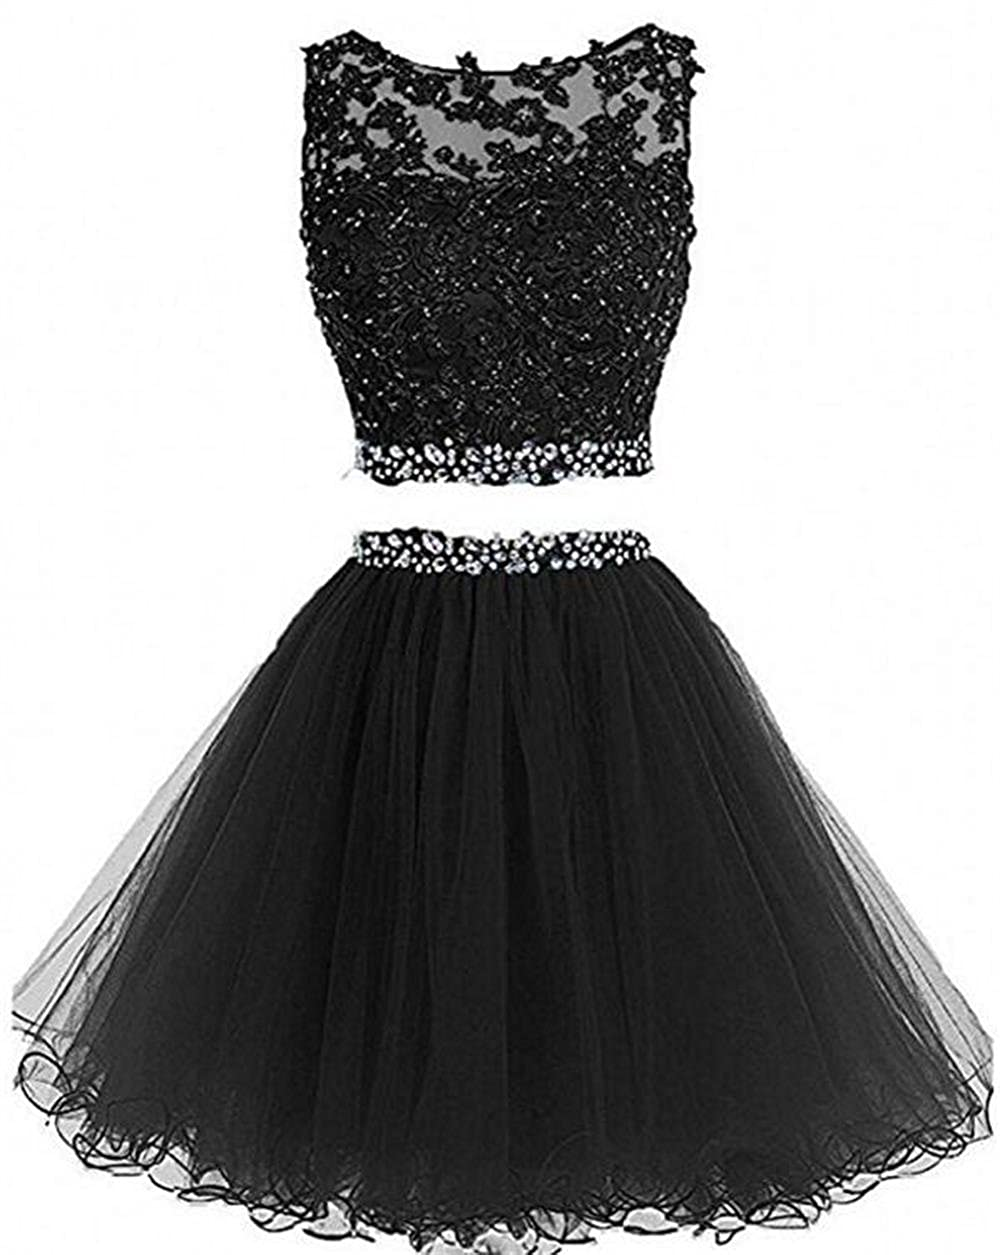 35629e2f8e8 Dydsz Women's Prom Homecoming Dress Short for Juniors 2019 Party Dresses 2  Piece Tulle D127 at Amazon Women's Clothing store: